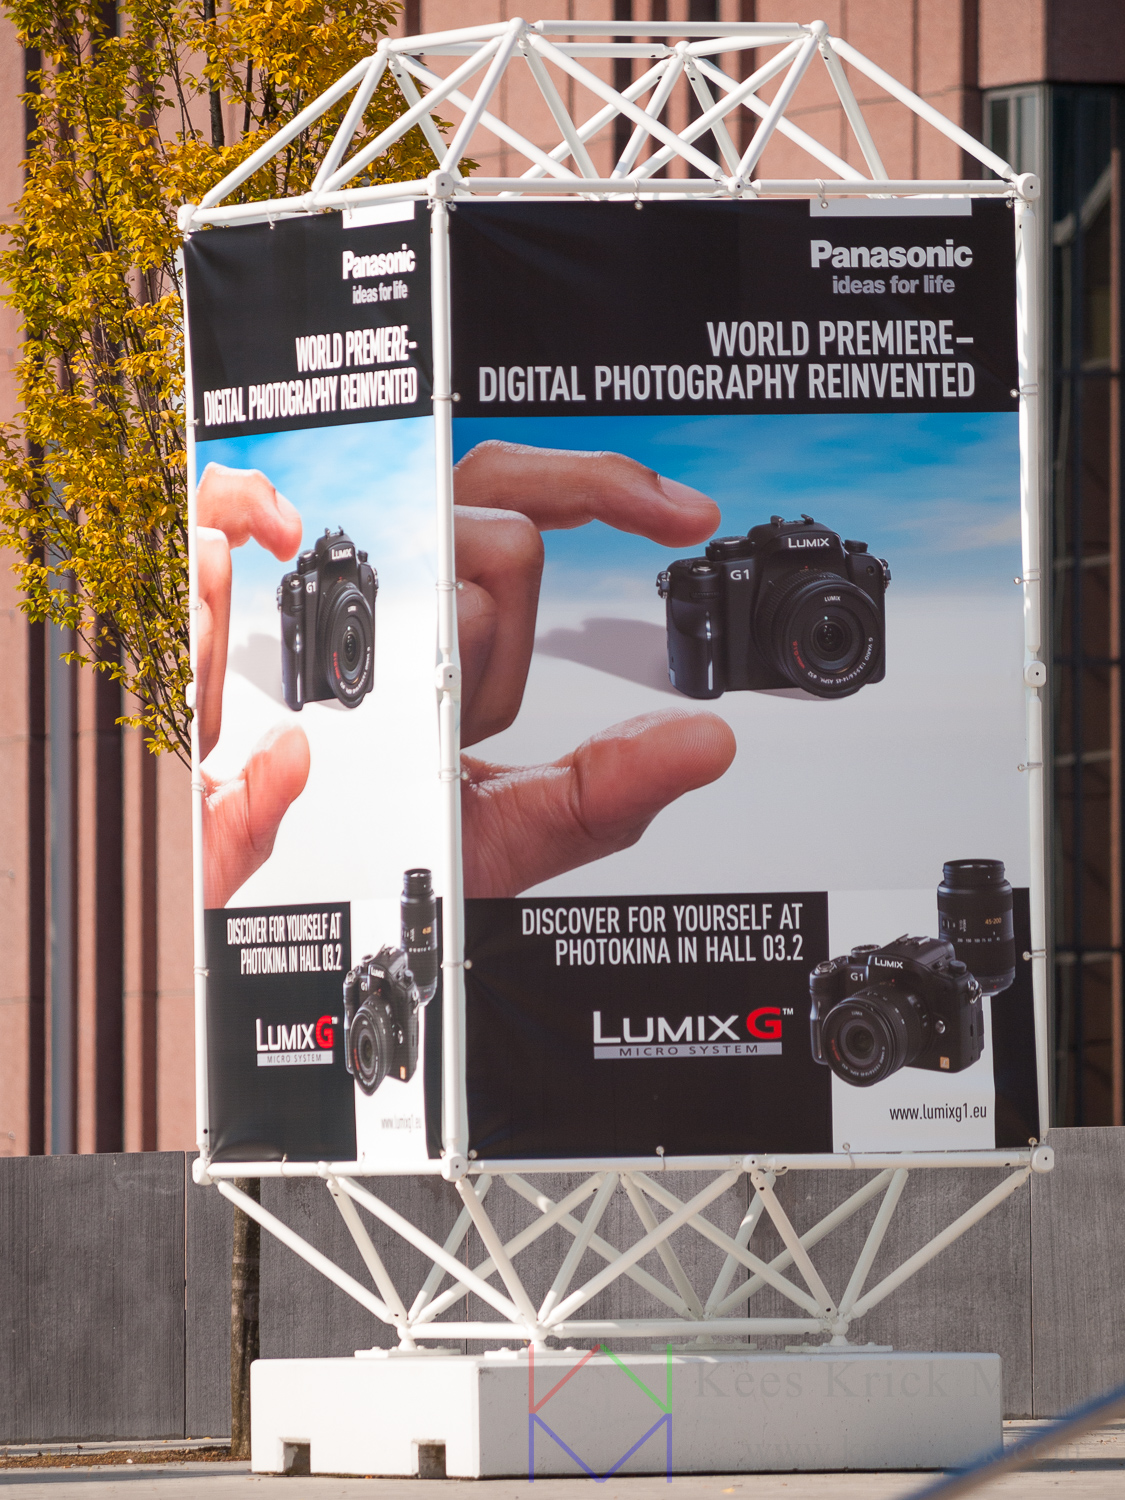 Panasonic Lumix G1 - Kees Krick Media